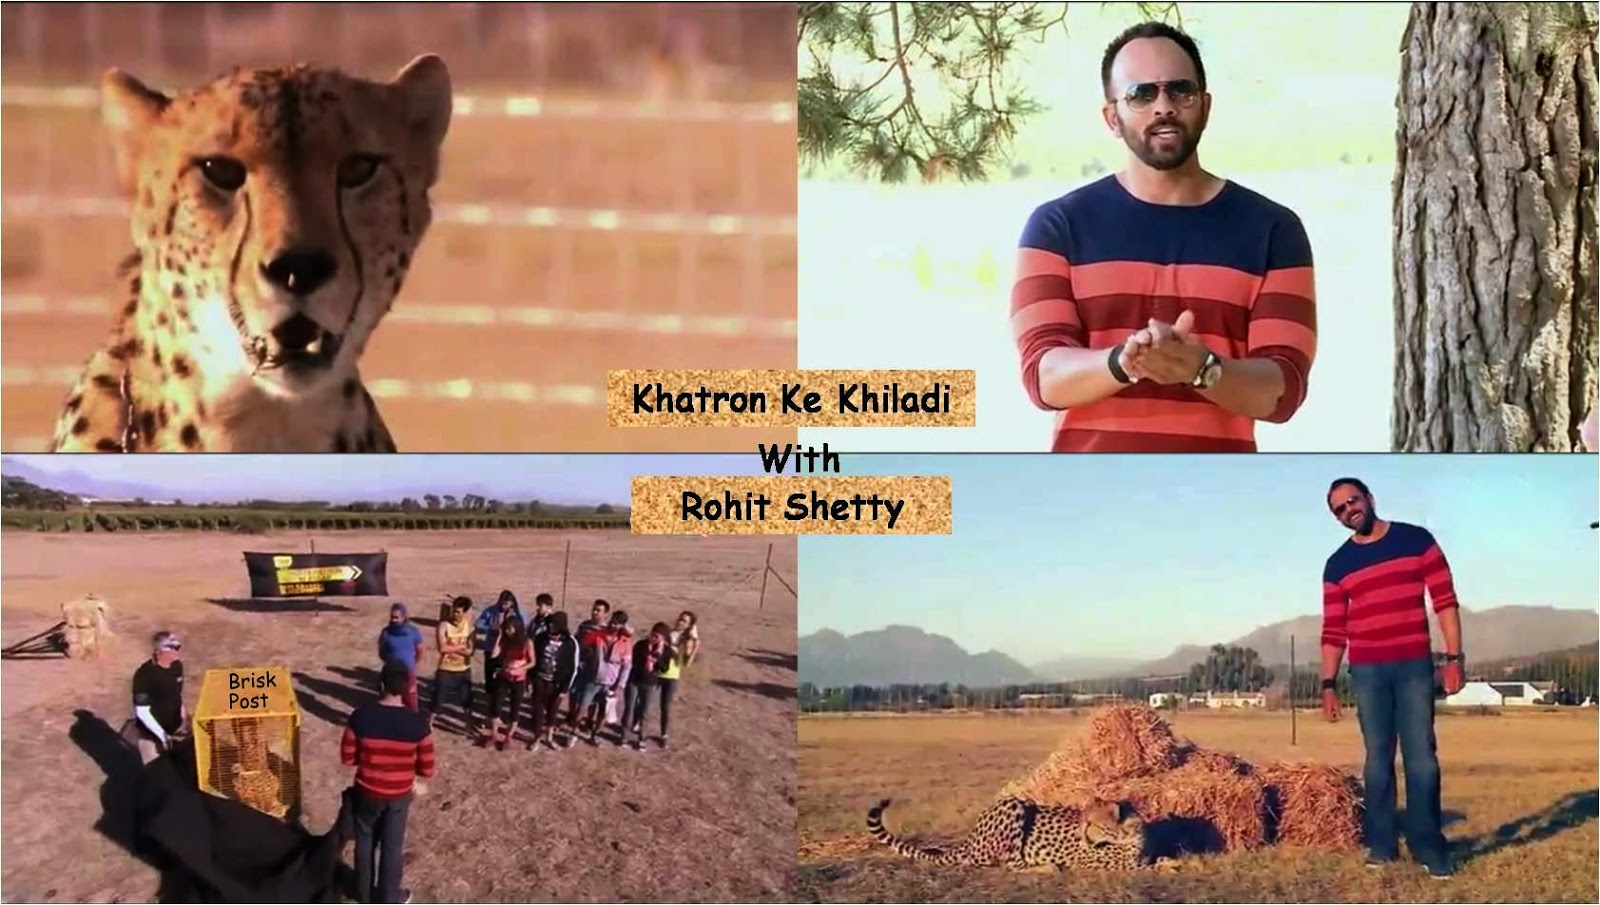 Rohit Shetty featured tiger for Fear Factor Khatron Ke Khiladi contestants